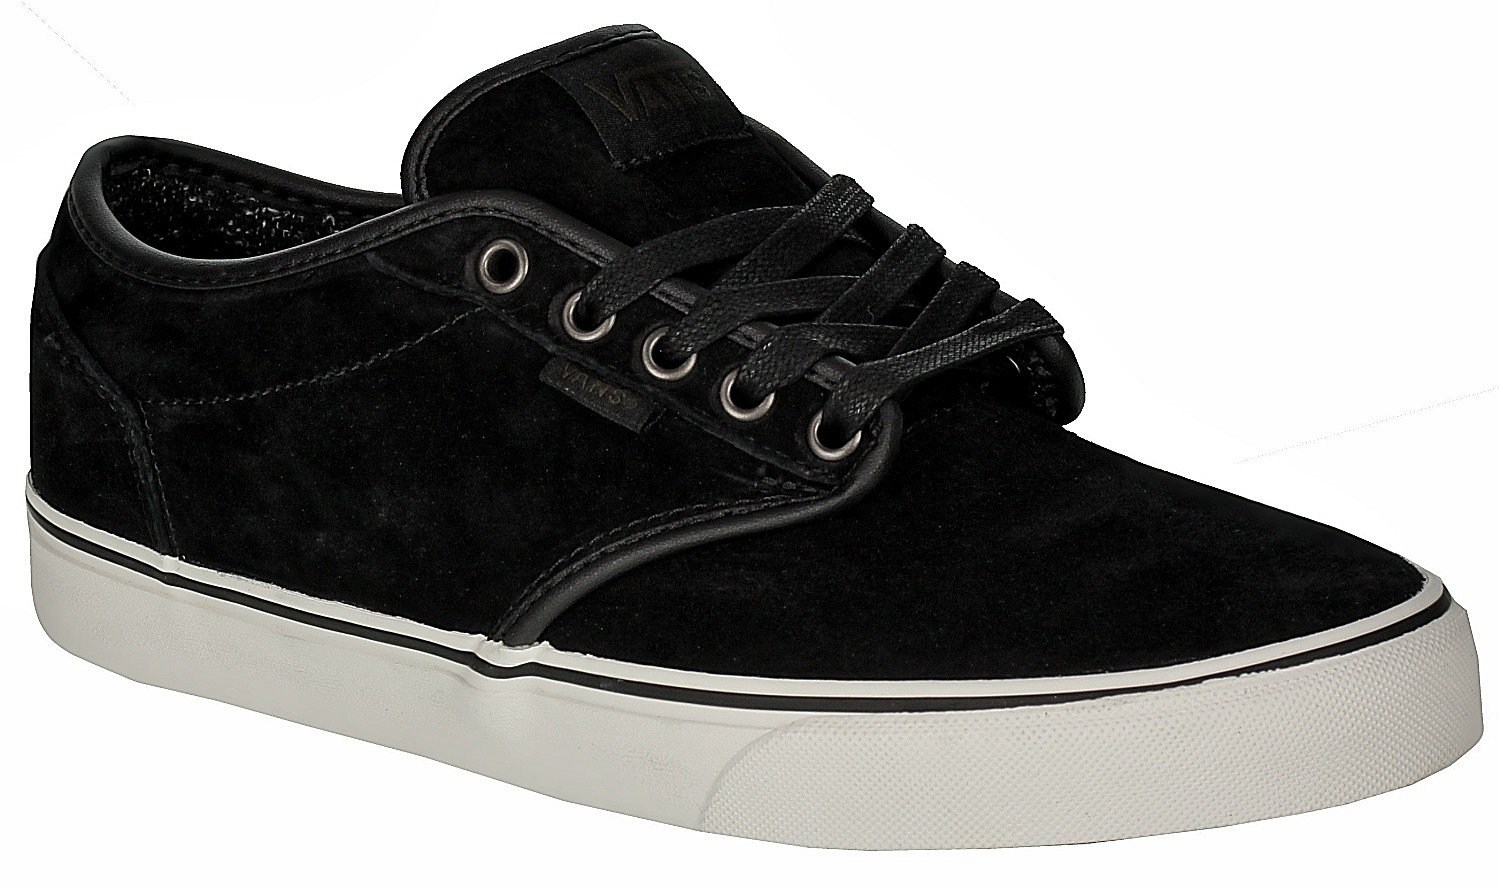 Images Of Black Vans Shoes